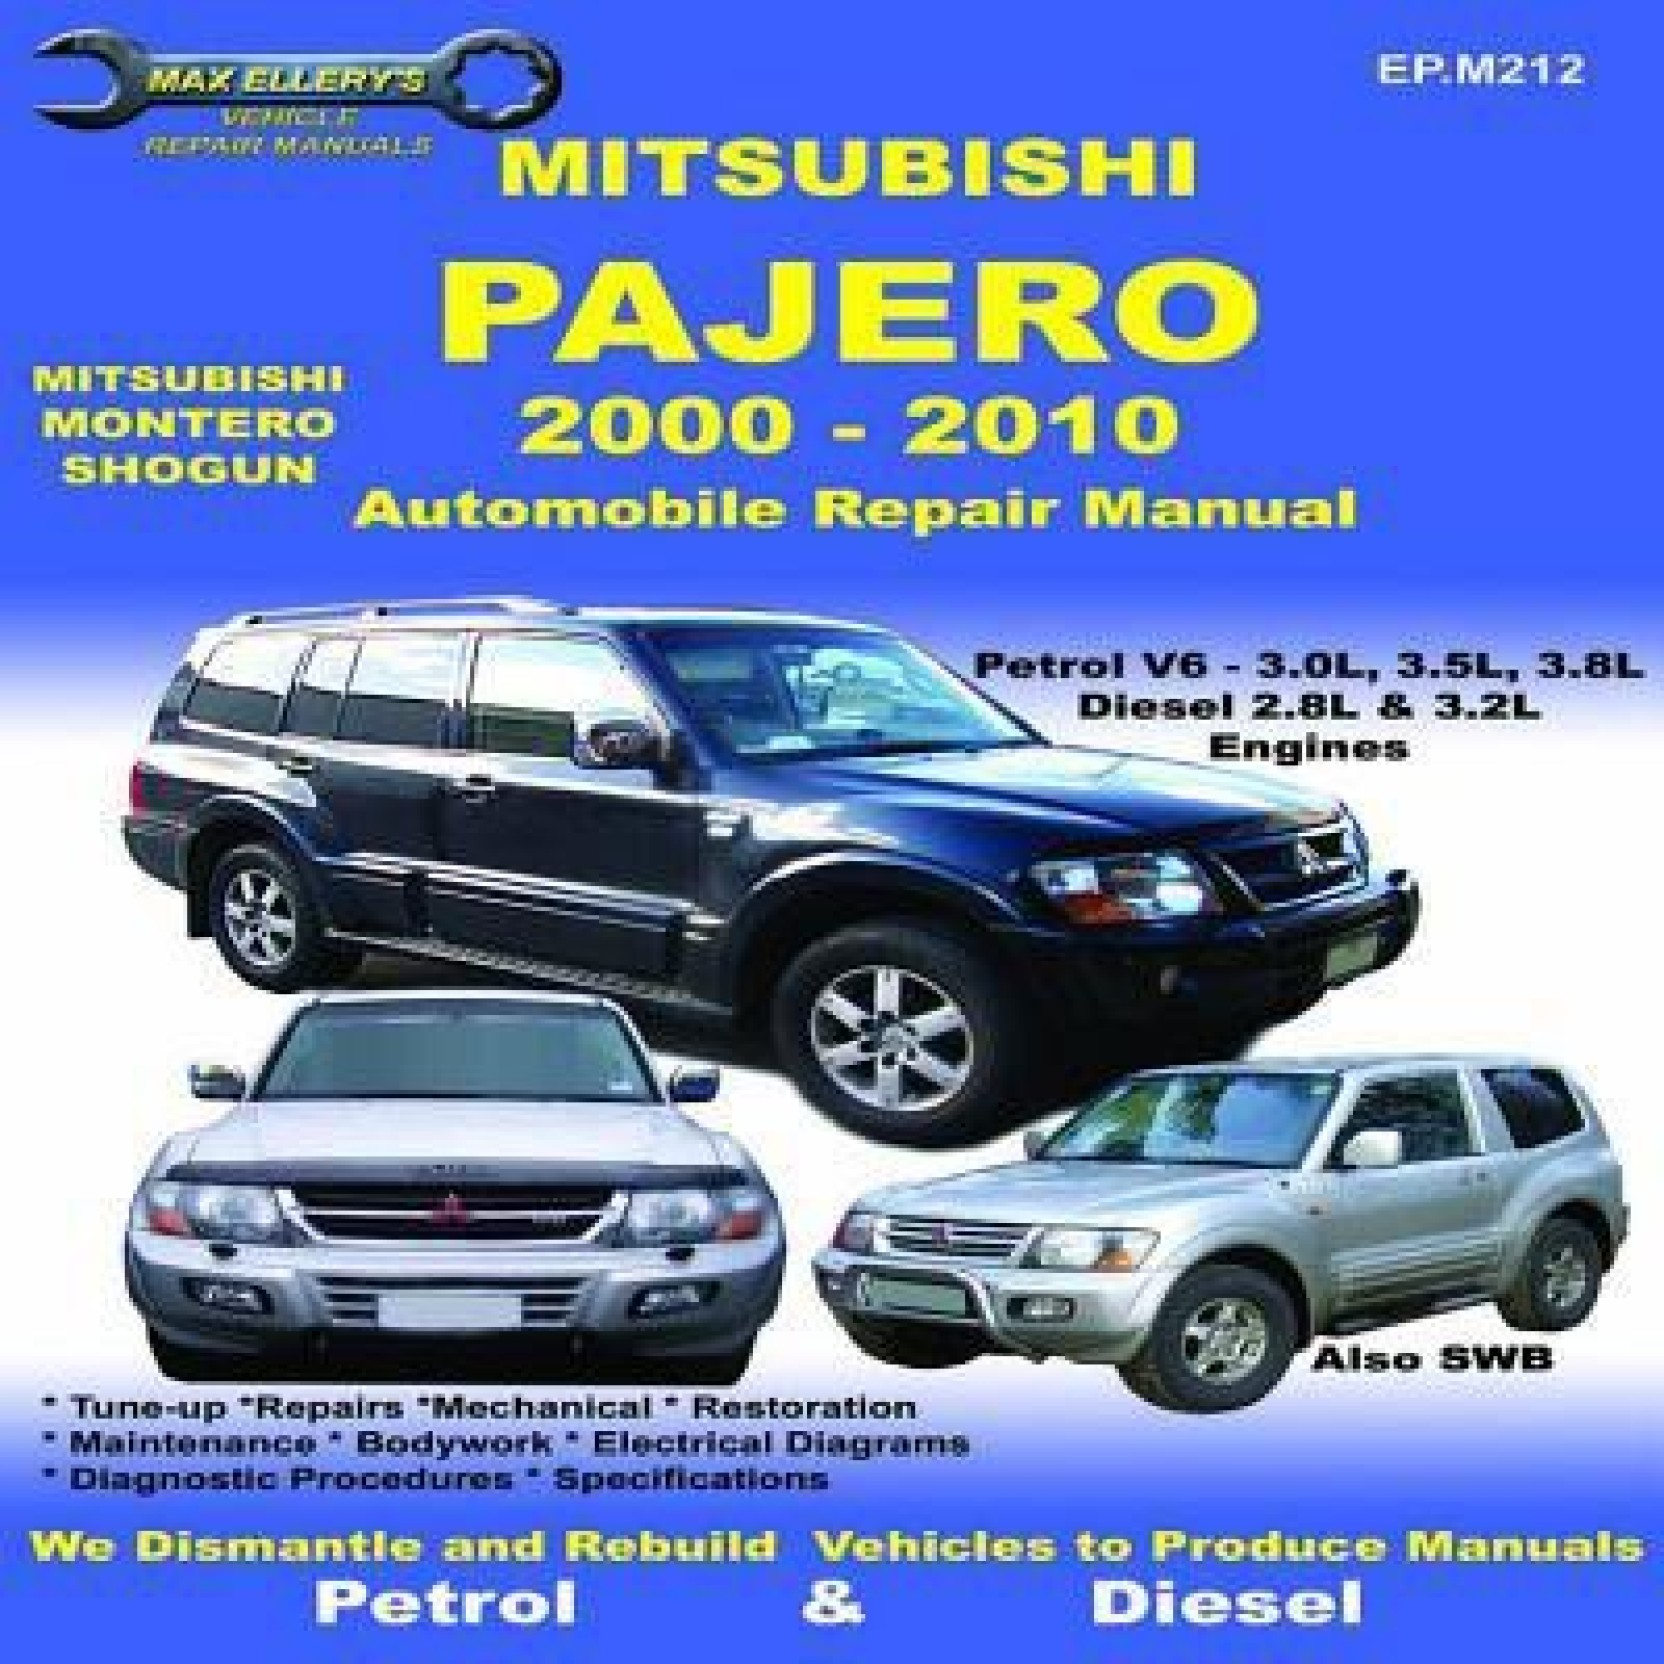 Mitsubishi - Pajero Vehicle Repair Manual (Max Ellery's Vehicle Repair  Manuals). Share